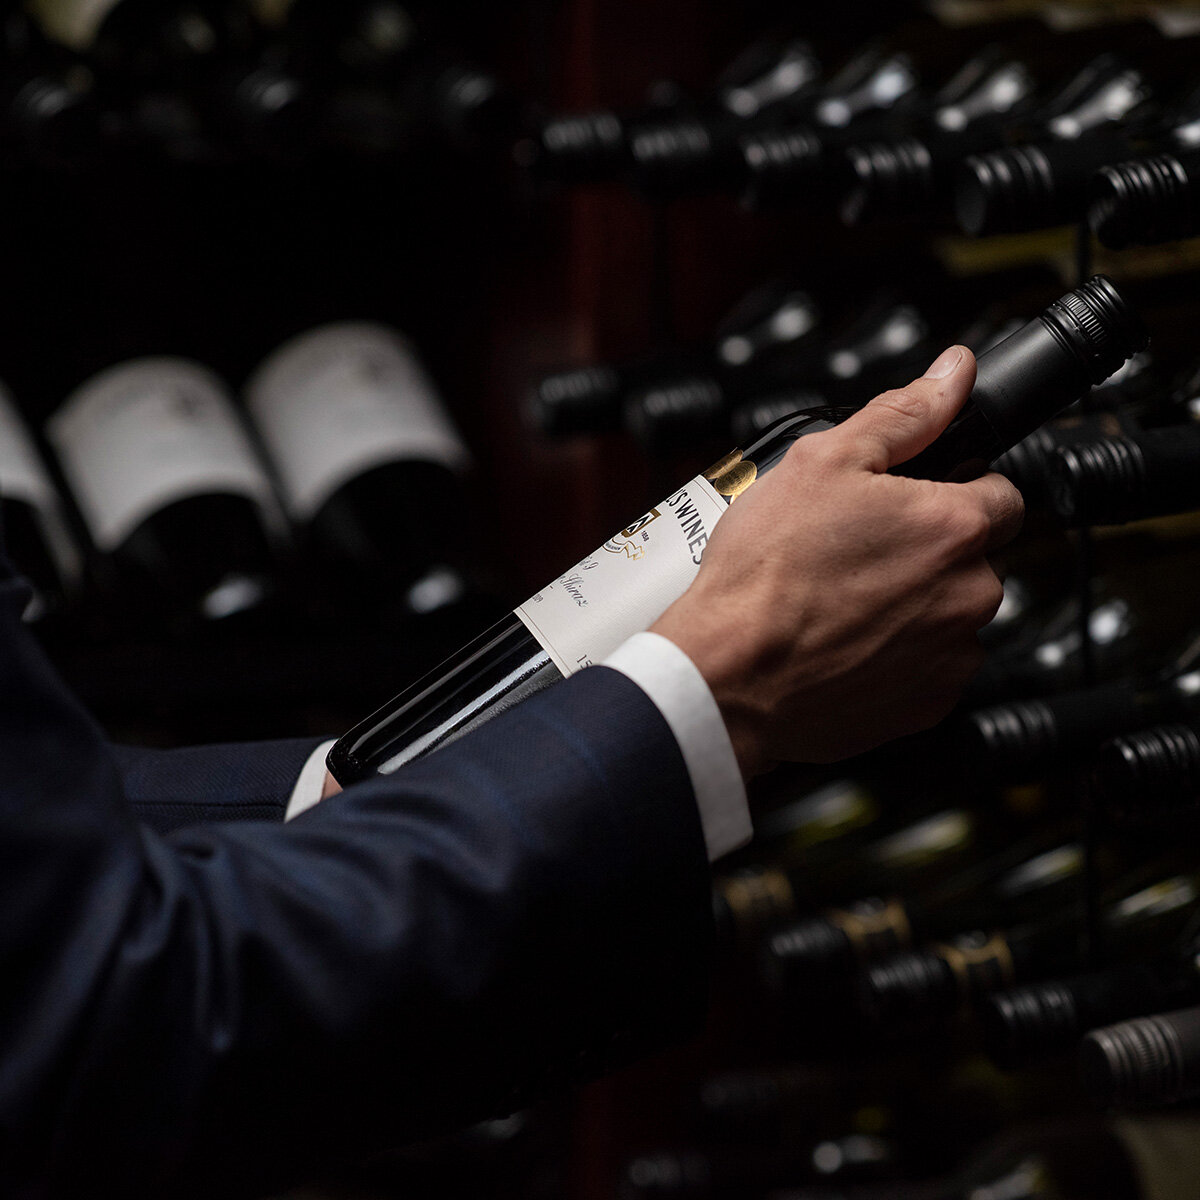 Your concierge service - If you need a bottle from your cellar but don't have the time to collect it, your concierge service will handle it for you. Your exclusive service includes receiving and cataloguing your wine, and same-day delivery from your cellar to home, work, or as a gift within metropolitan Melbourne.